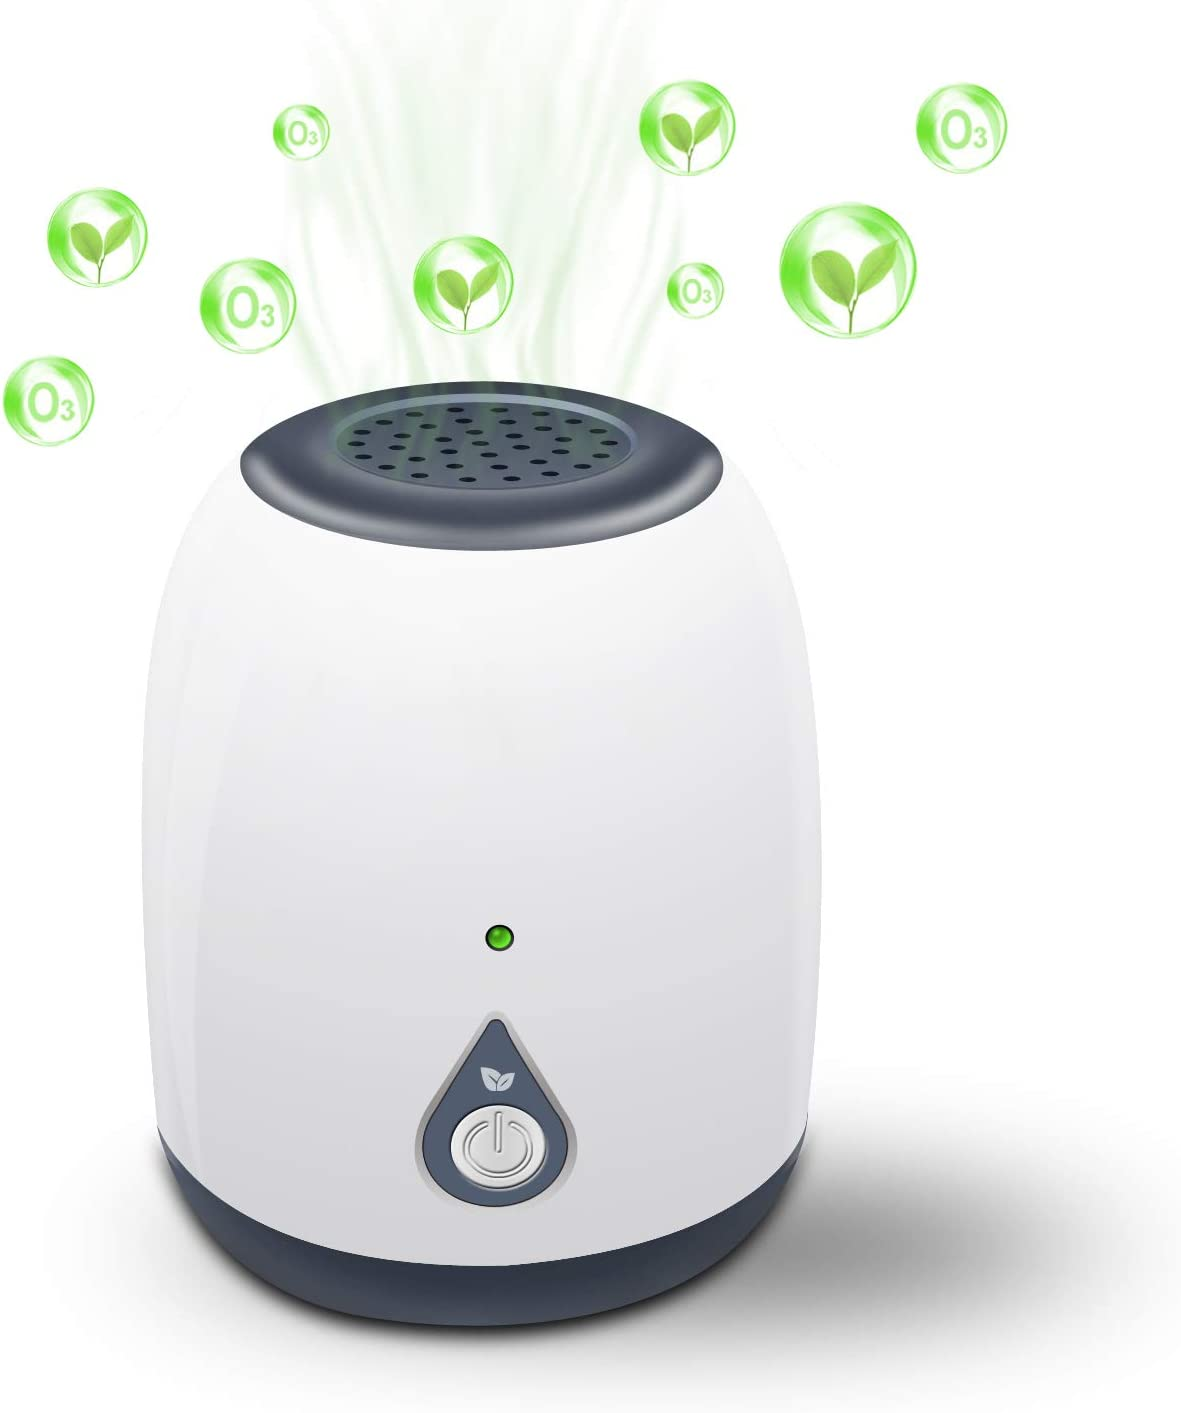 Air Purifiers for Home, Portable Mini Ozone Generator, Odor Eliminator Ozone Cleaner Mini Air Ionizer, Air Cleaner for Travelling, Outdoor, Room, Pets, Cars